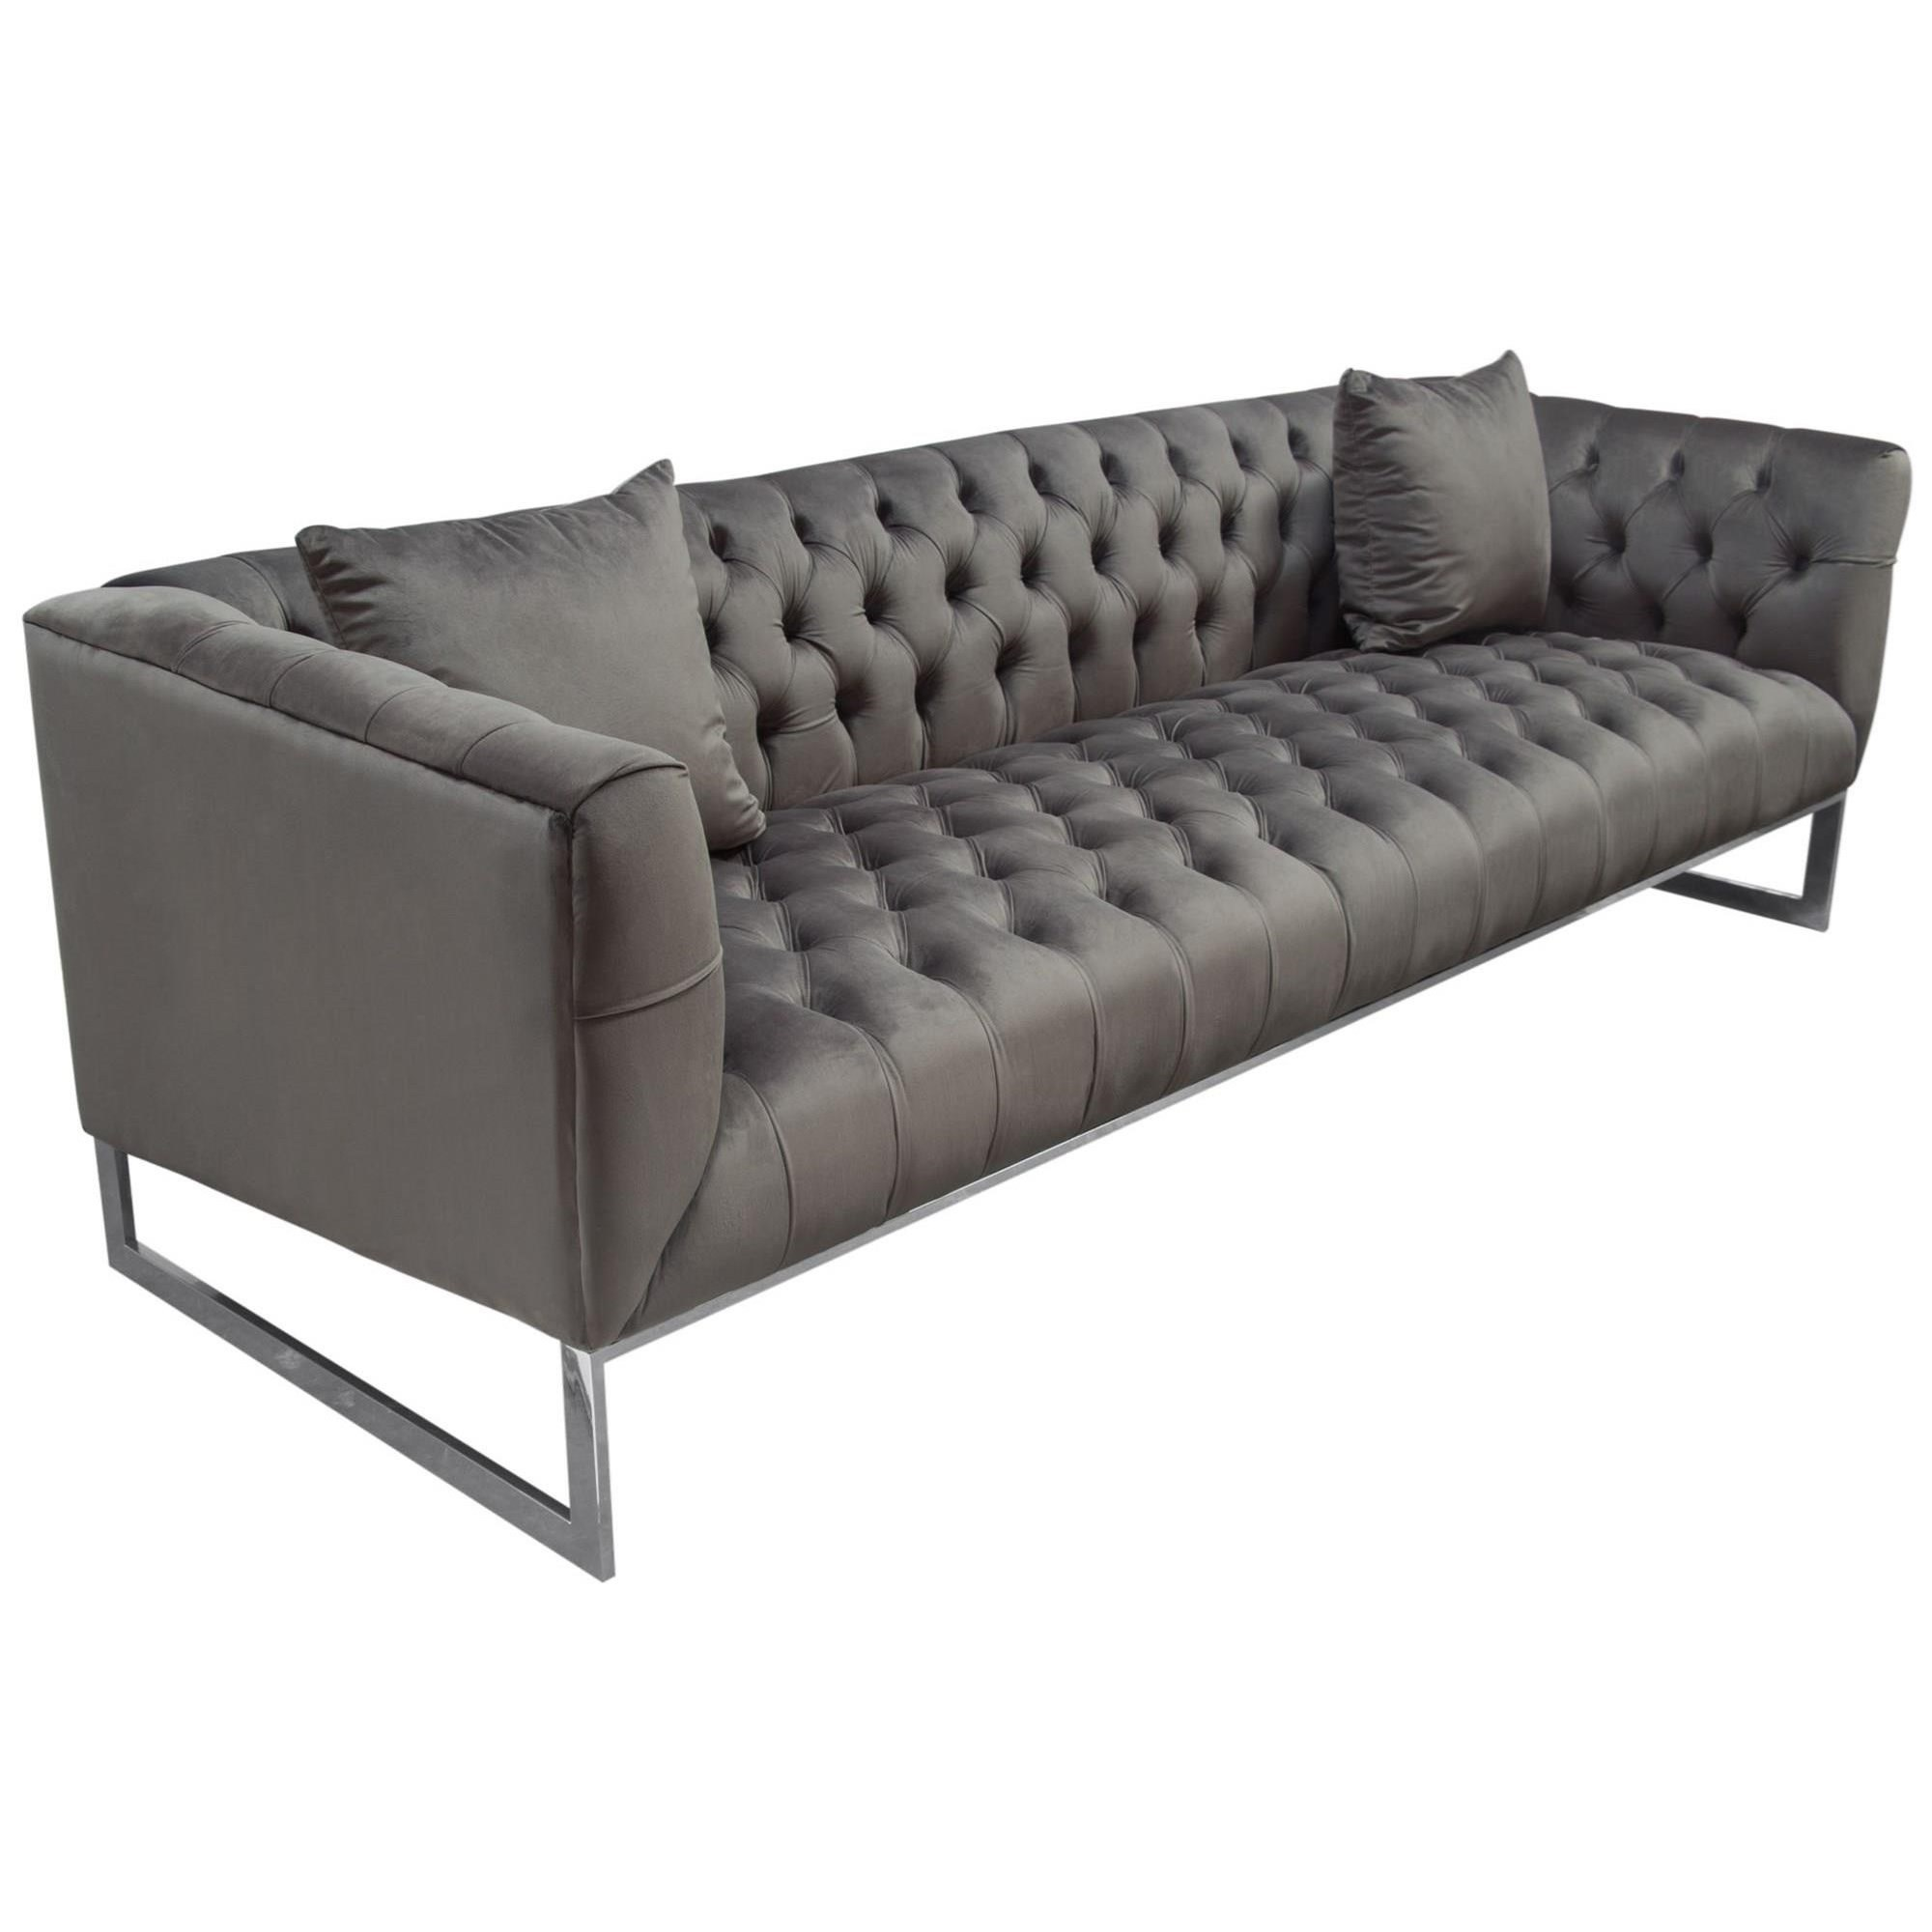 Crawford Sofa by Diamond Sofa at Red Knot